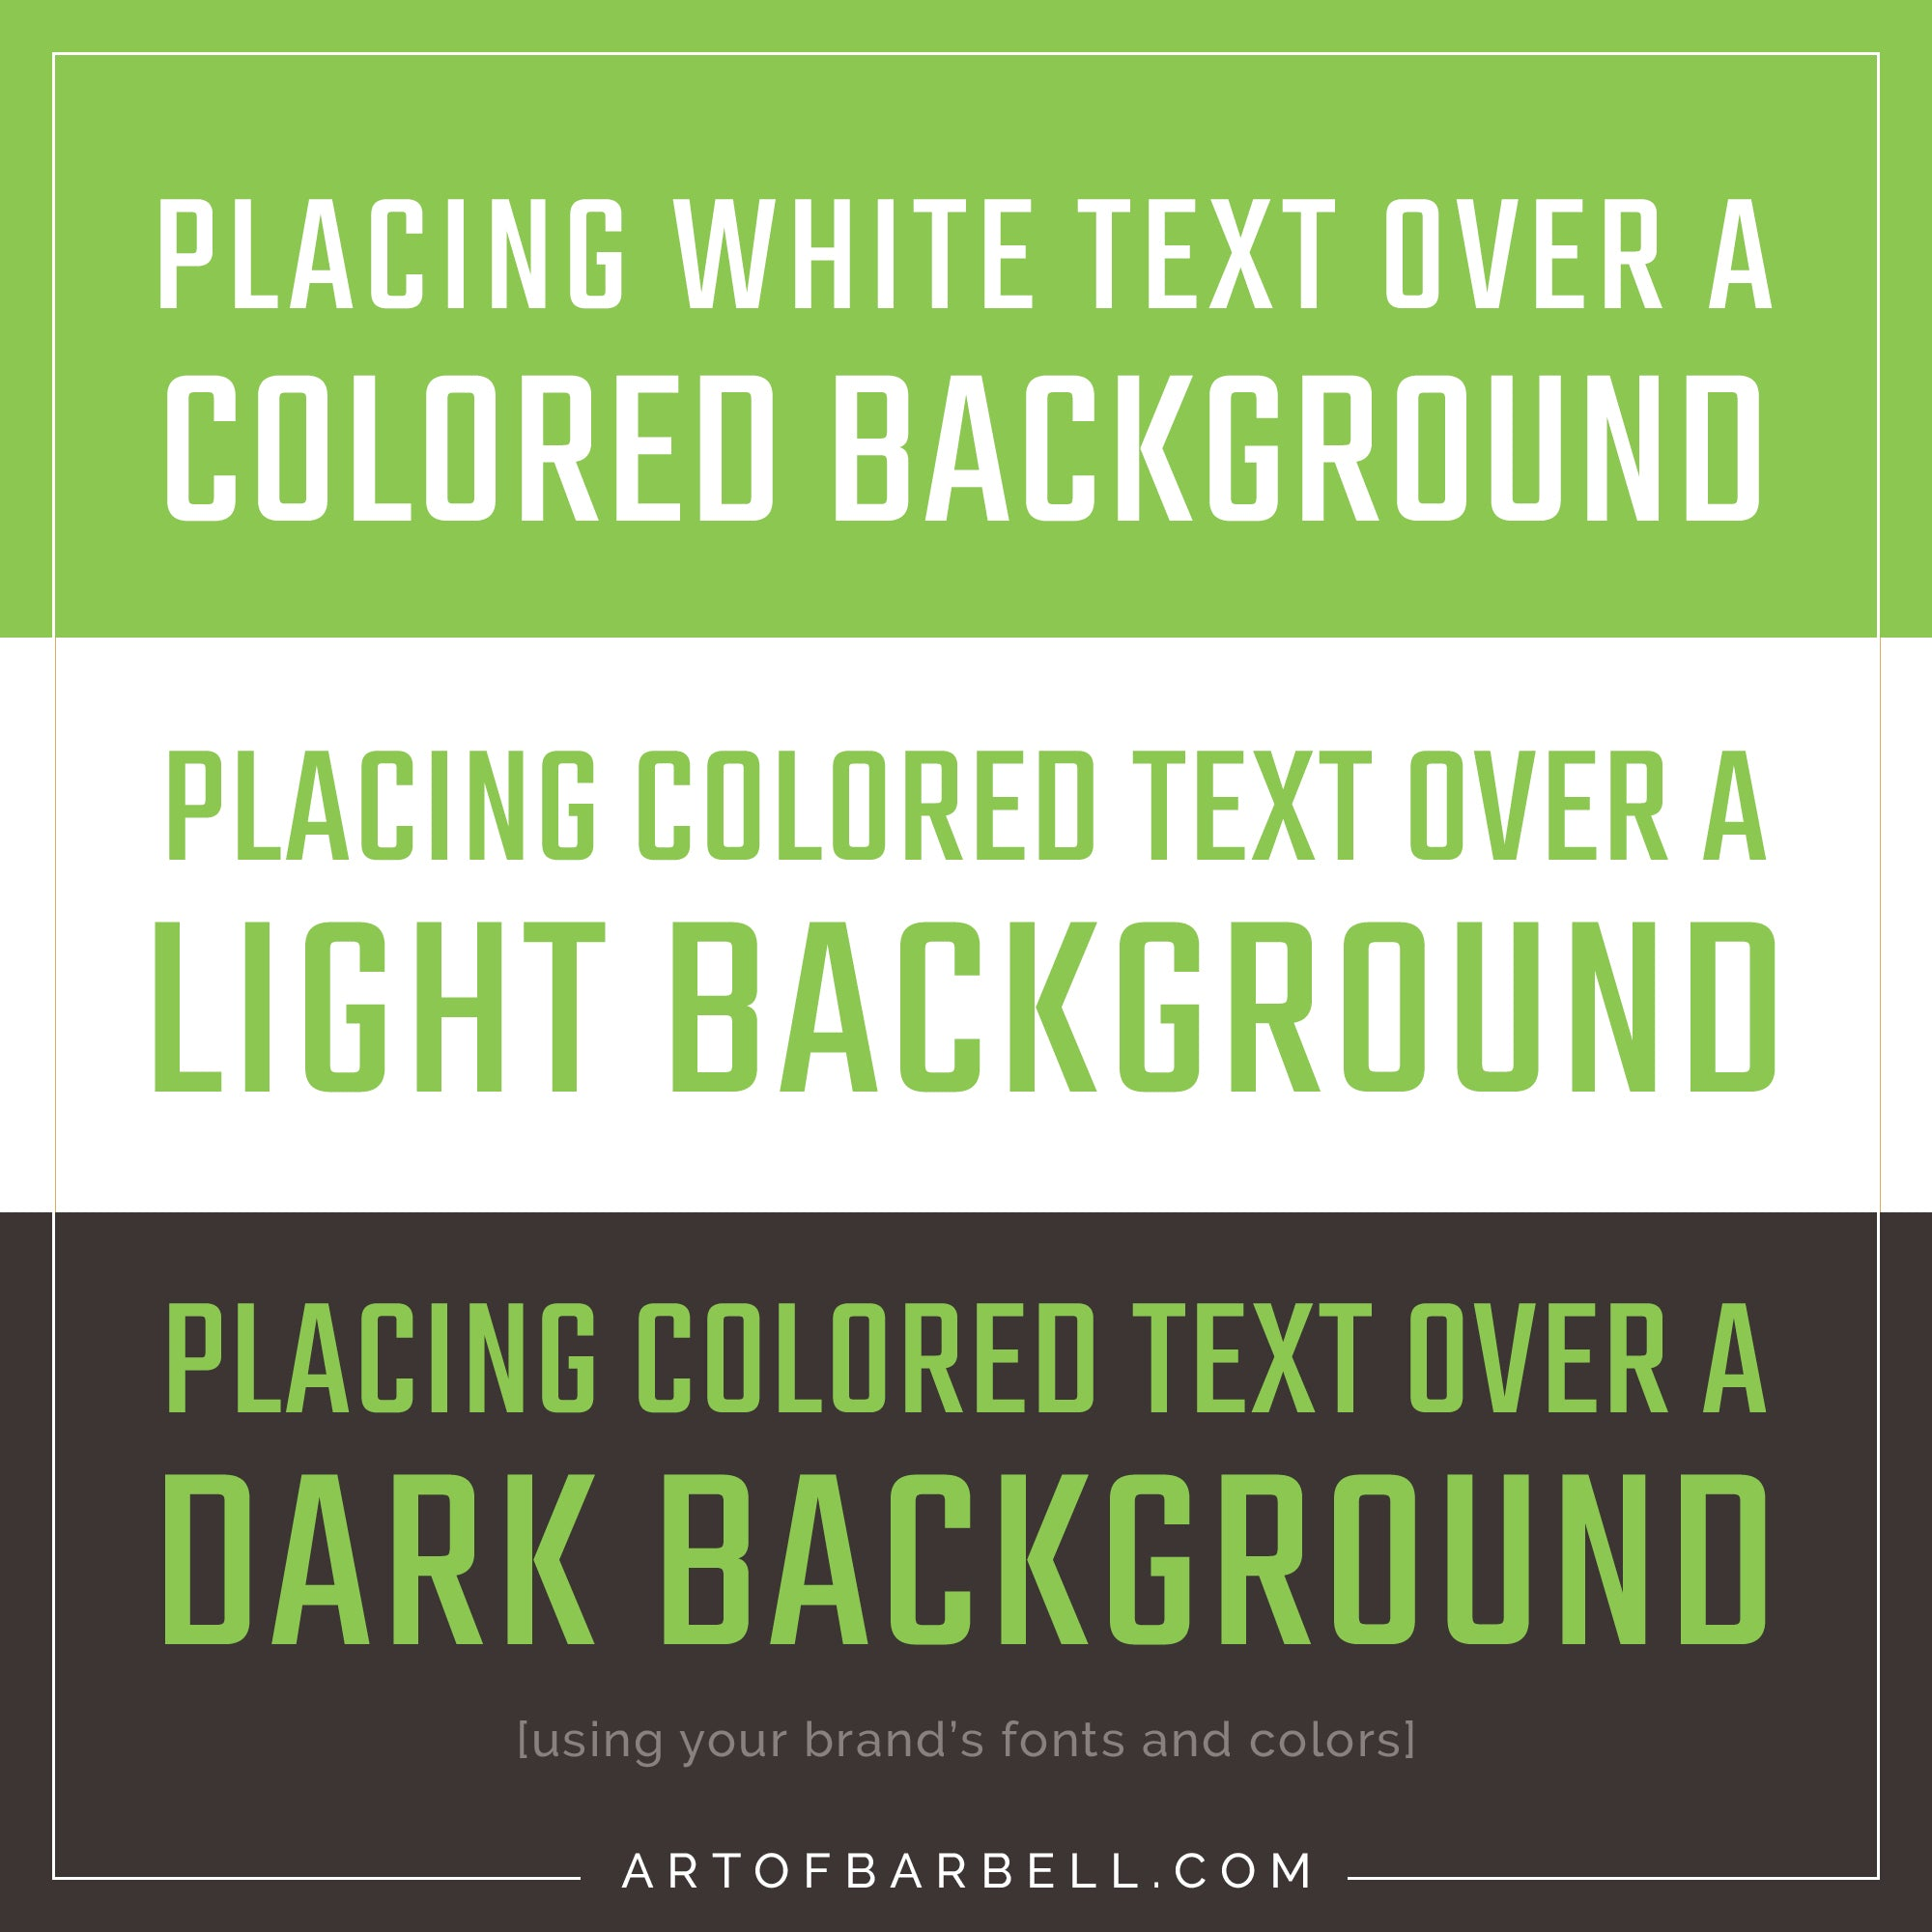 Using colored text against different backgrounds to create consistent branded graphics